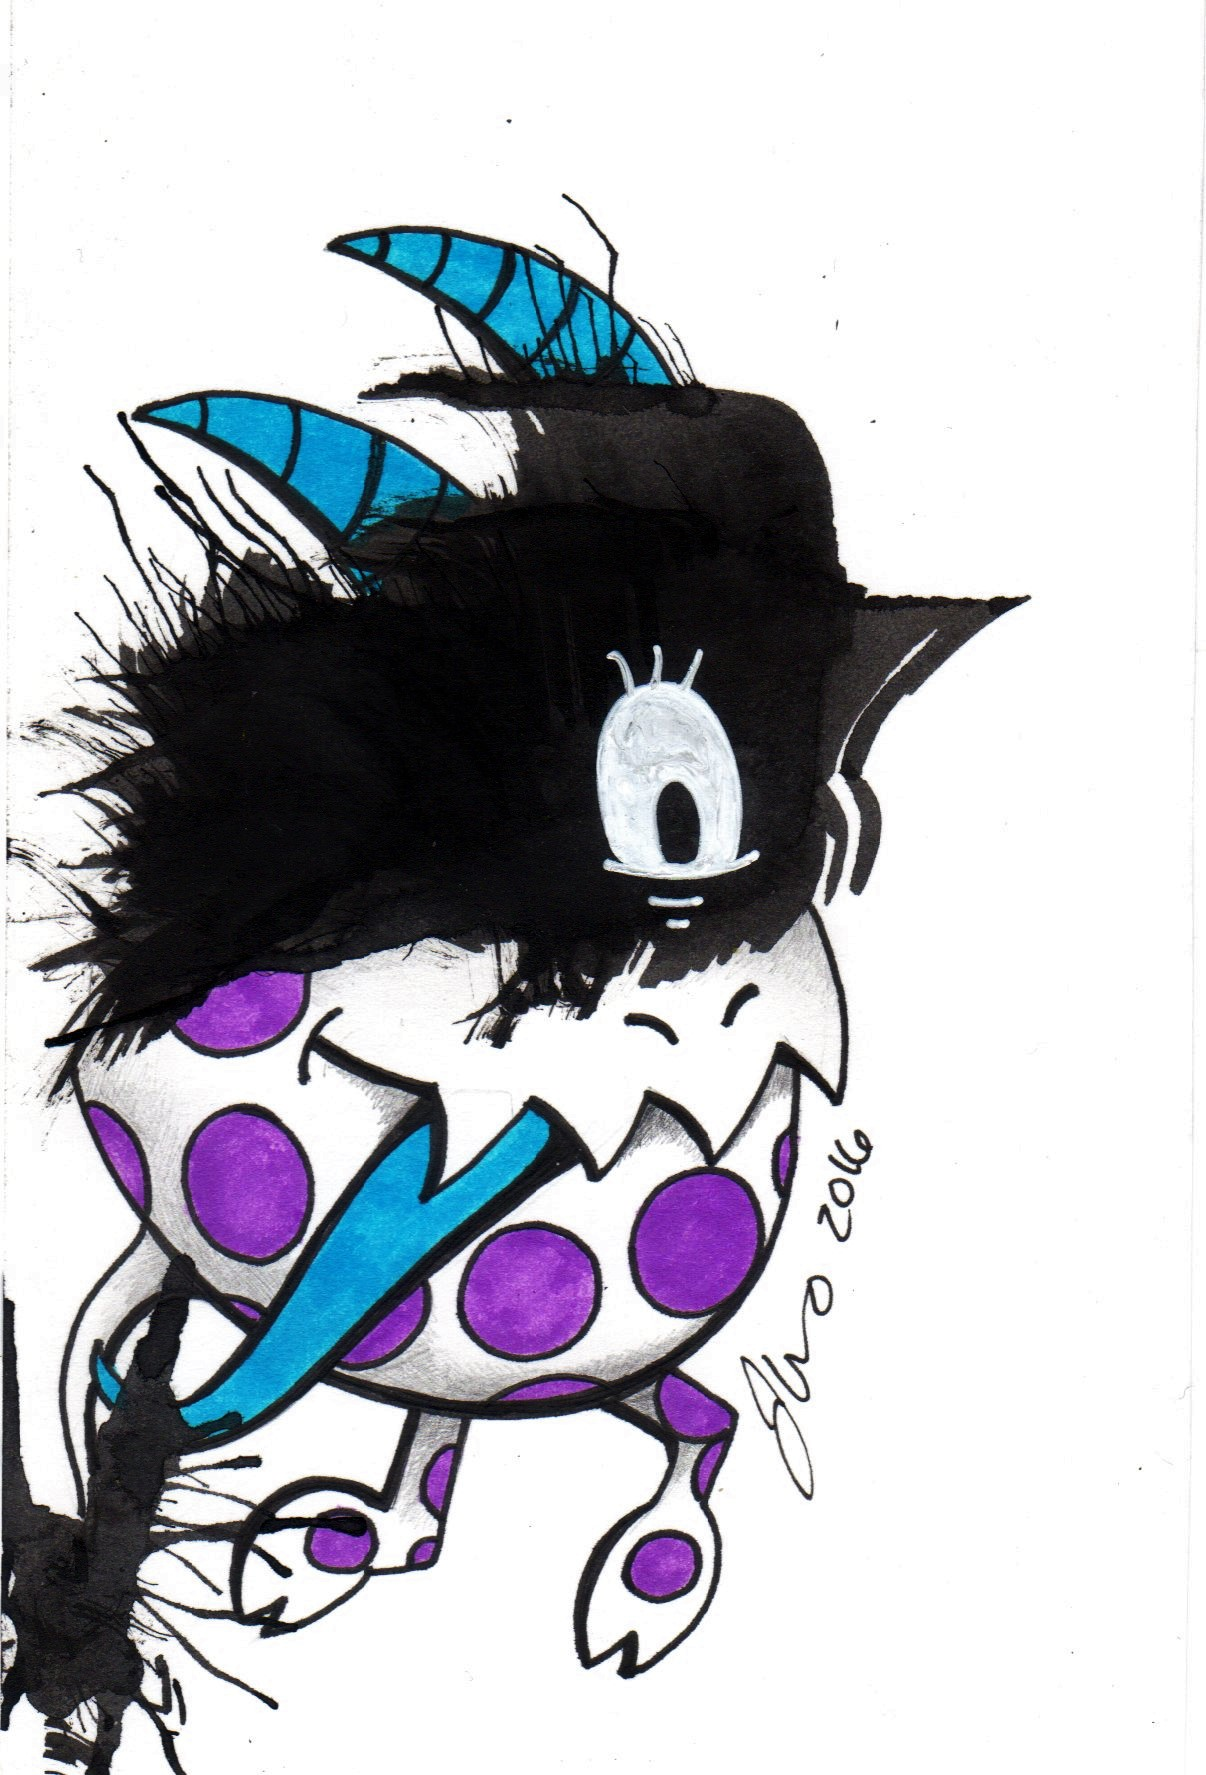 Ink Blot Monster #7